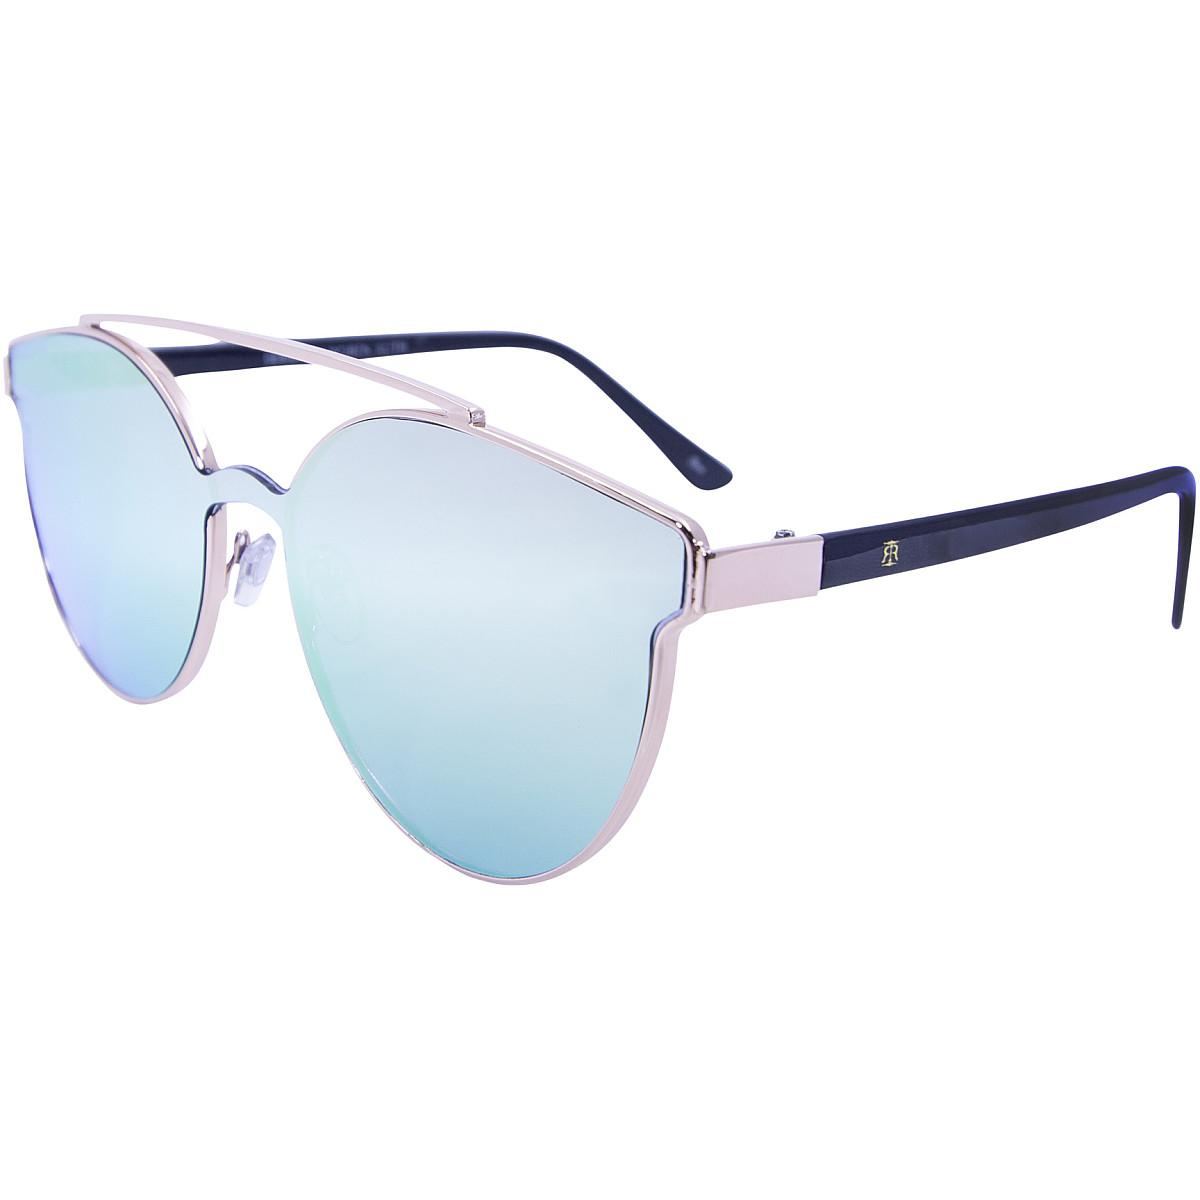 bd555fd1d77 Details about ROBIN RUTH TULSA LIMITED COLLECTION DESIGNER SUNGLASSES-PINK